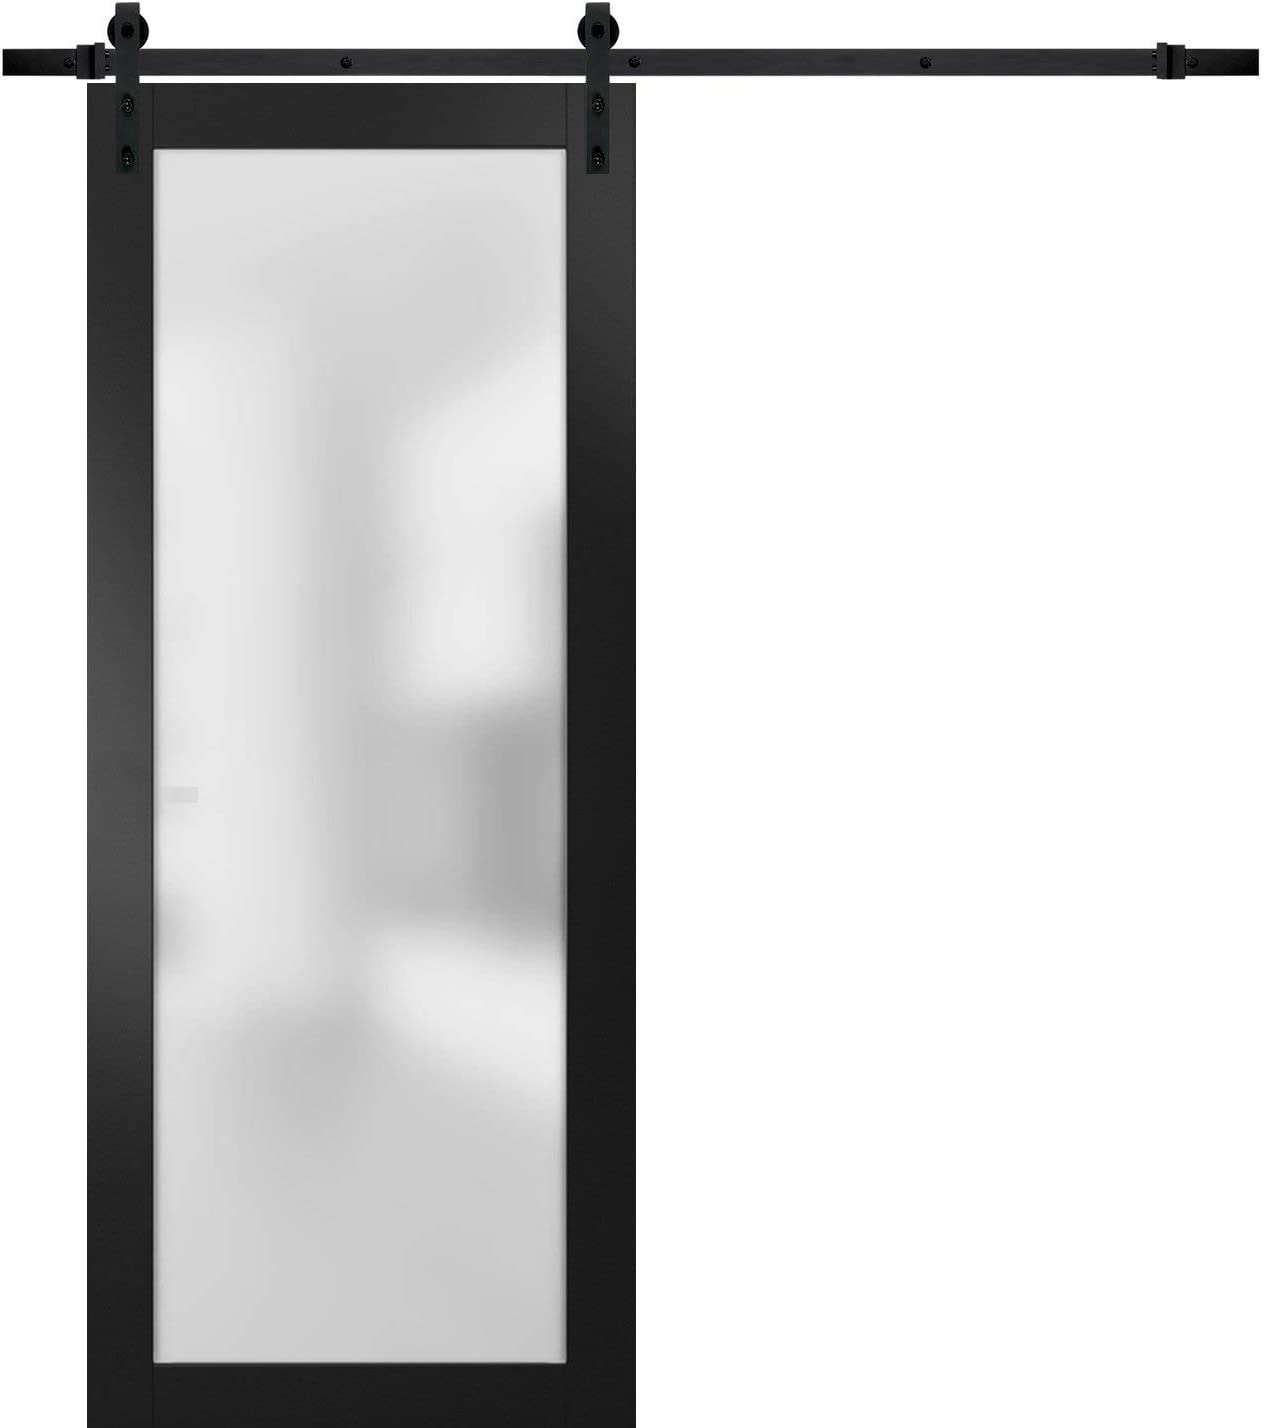 Sturdy Barn Door 30 x 84 Frosted Planum Challenge the lowest price of Japan ☆ Glass NEW before selling Tempered inches